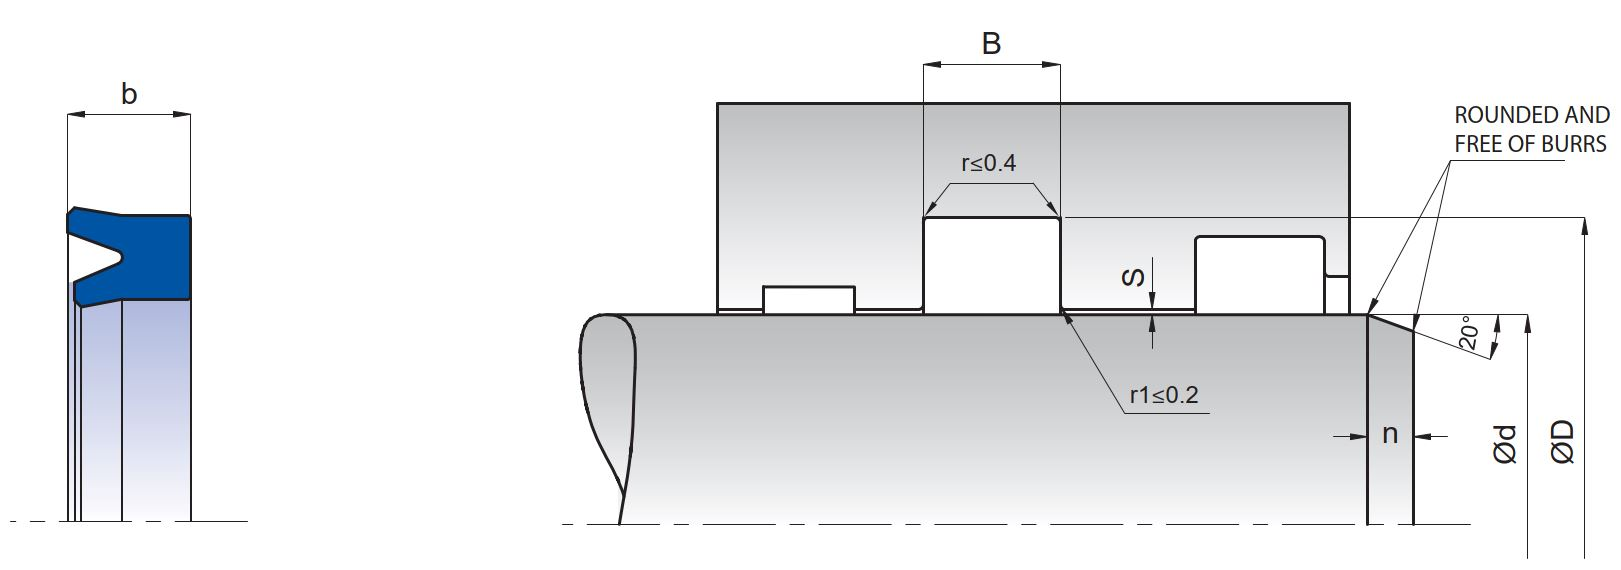 Drawing RS-72